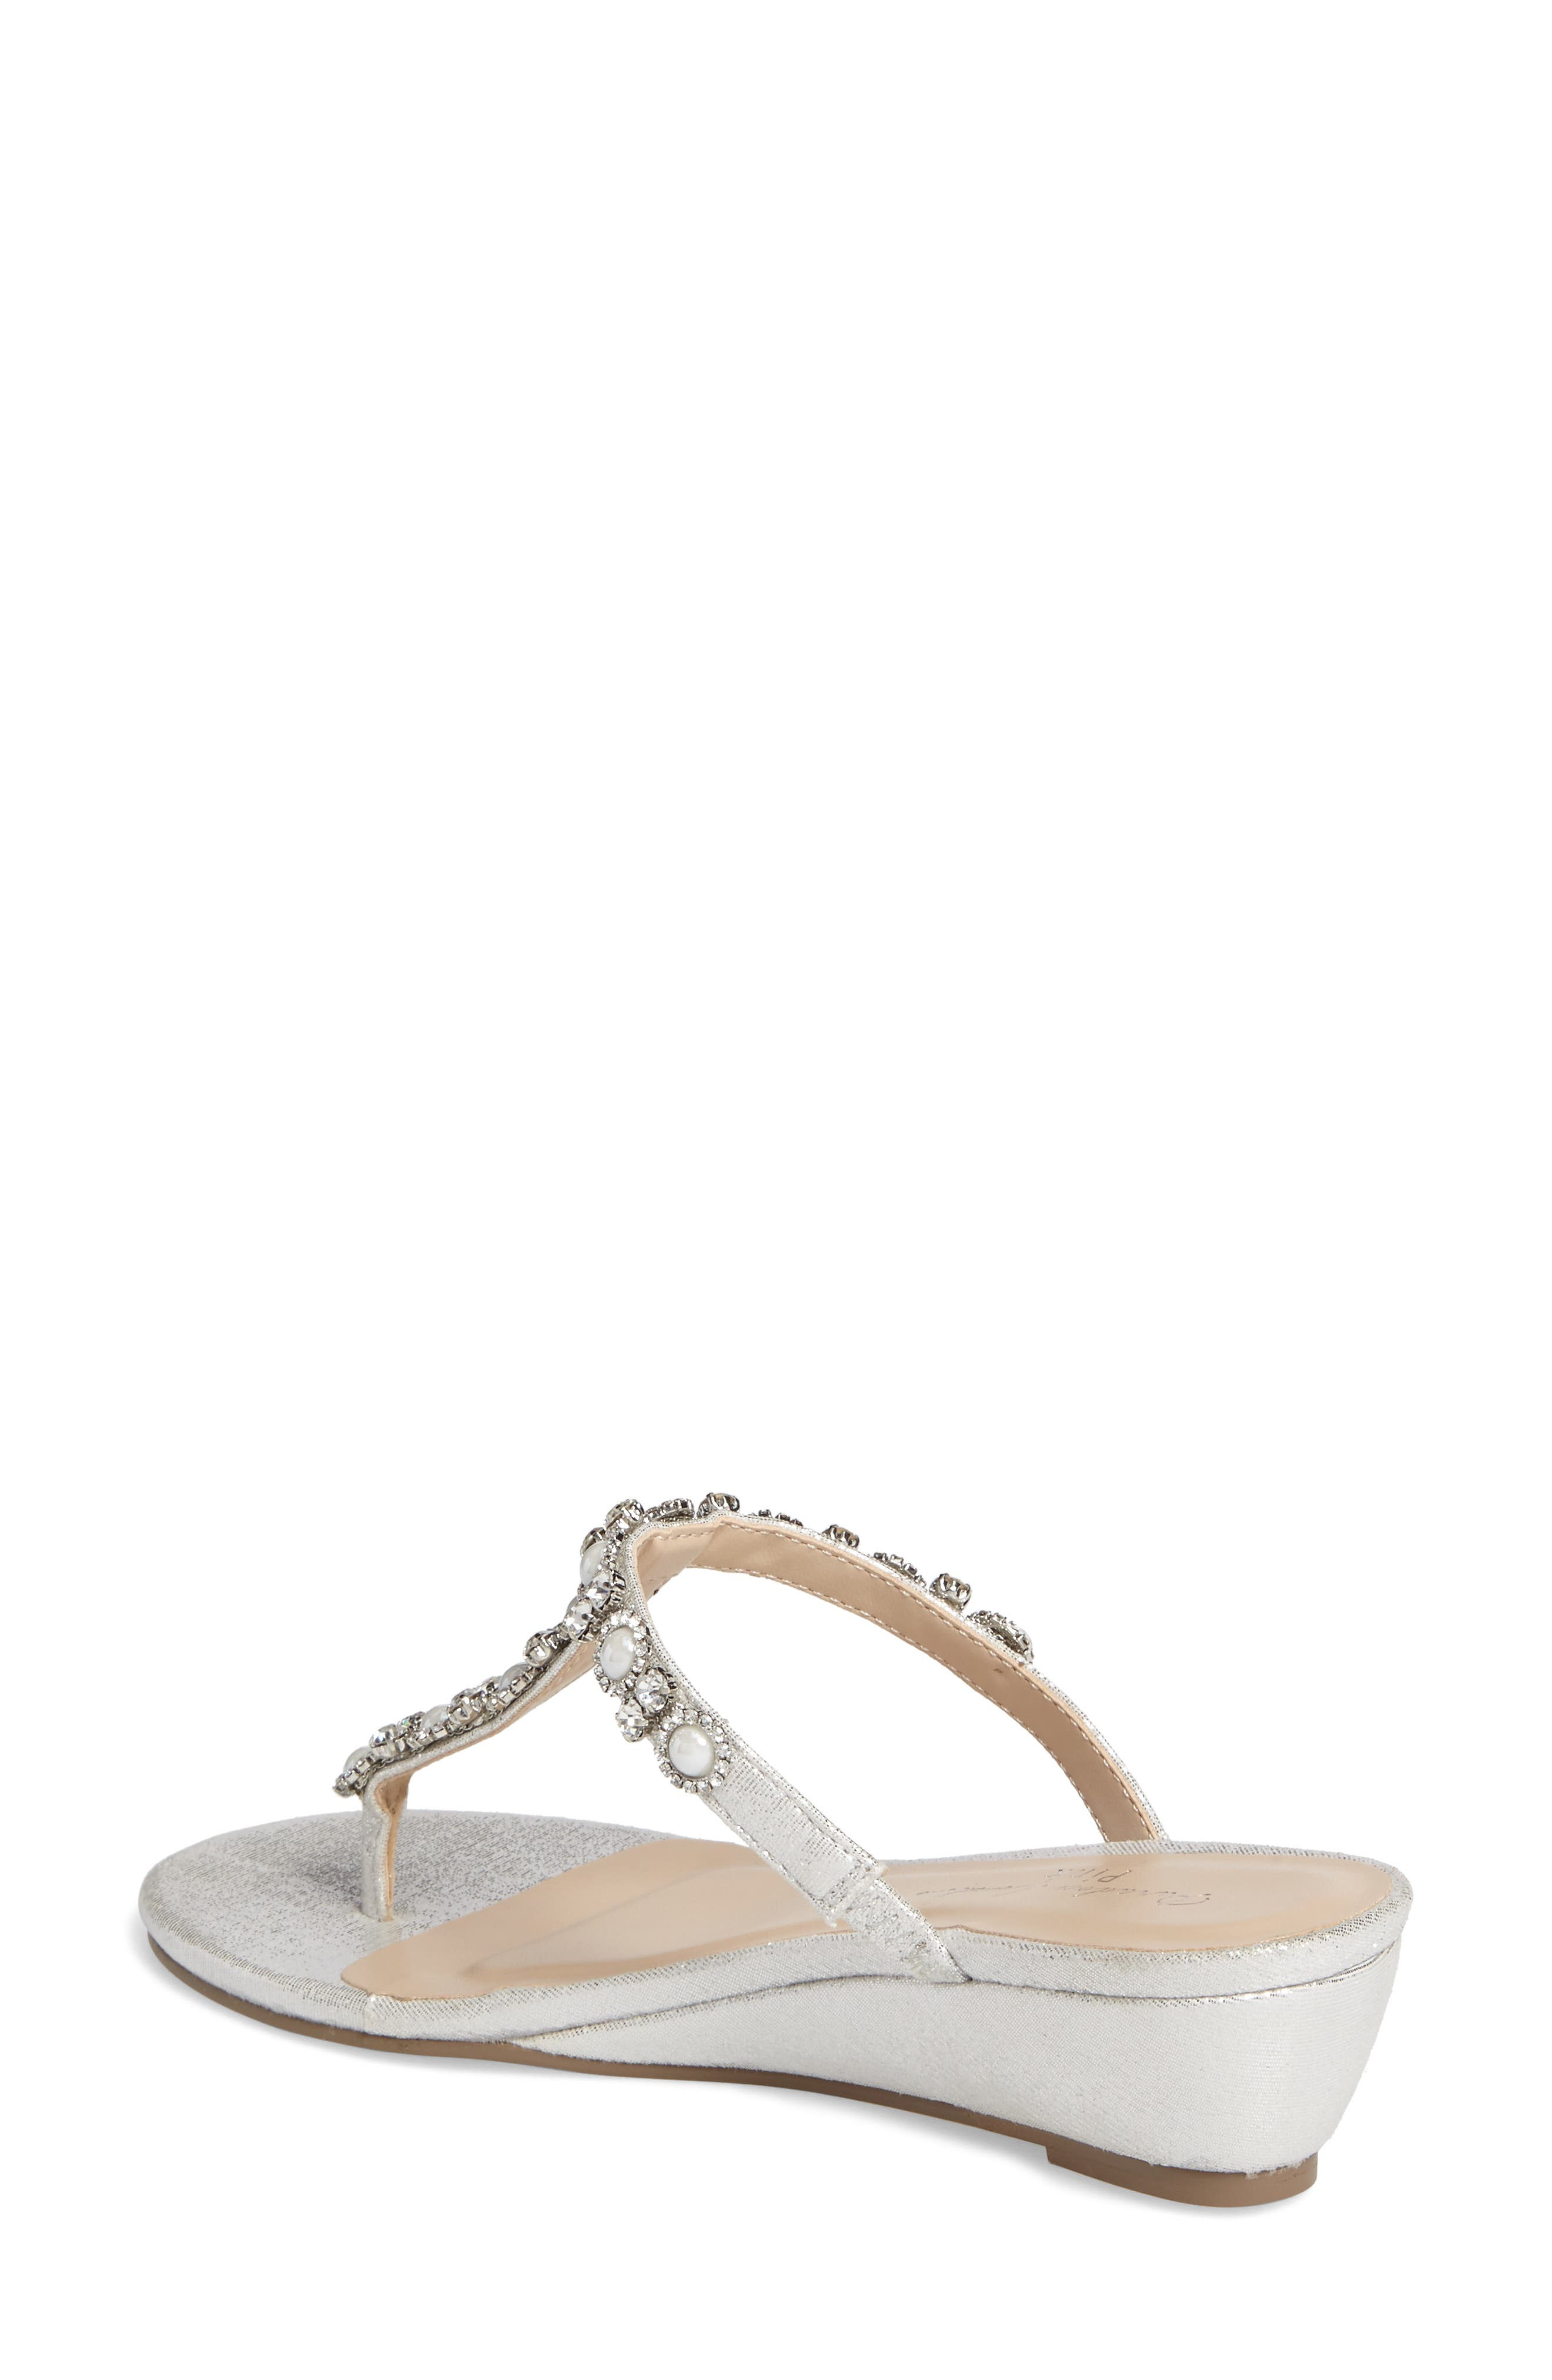 Marnie Embellished T-Strap Wedge,                             Alternate thumbnail 2, color,                             SILVER